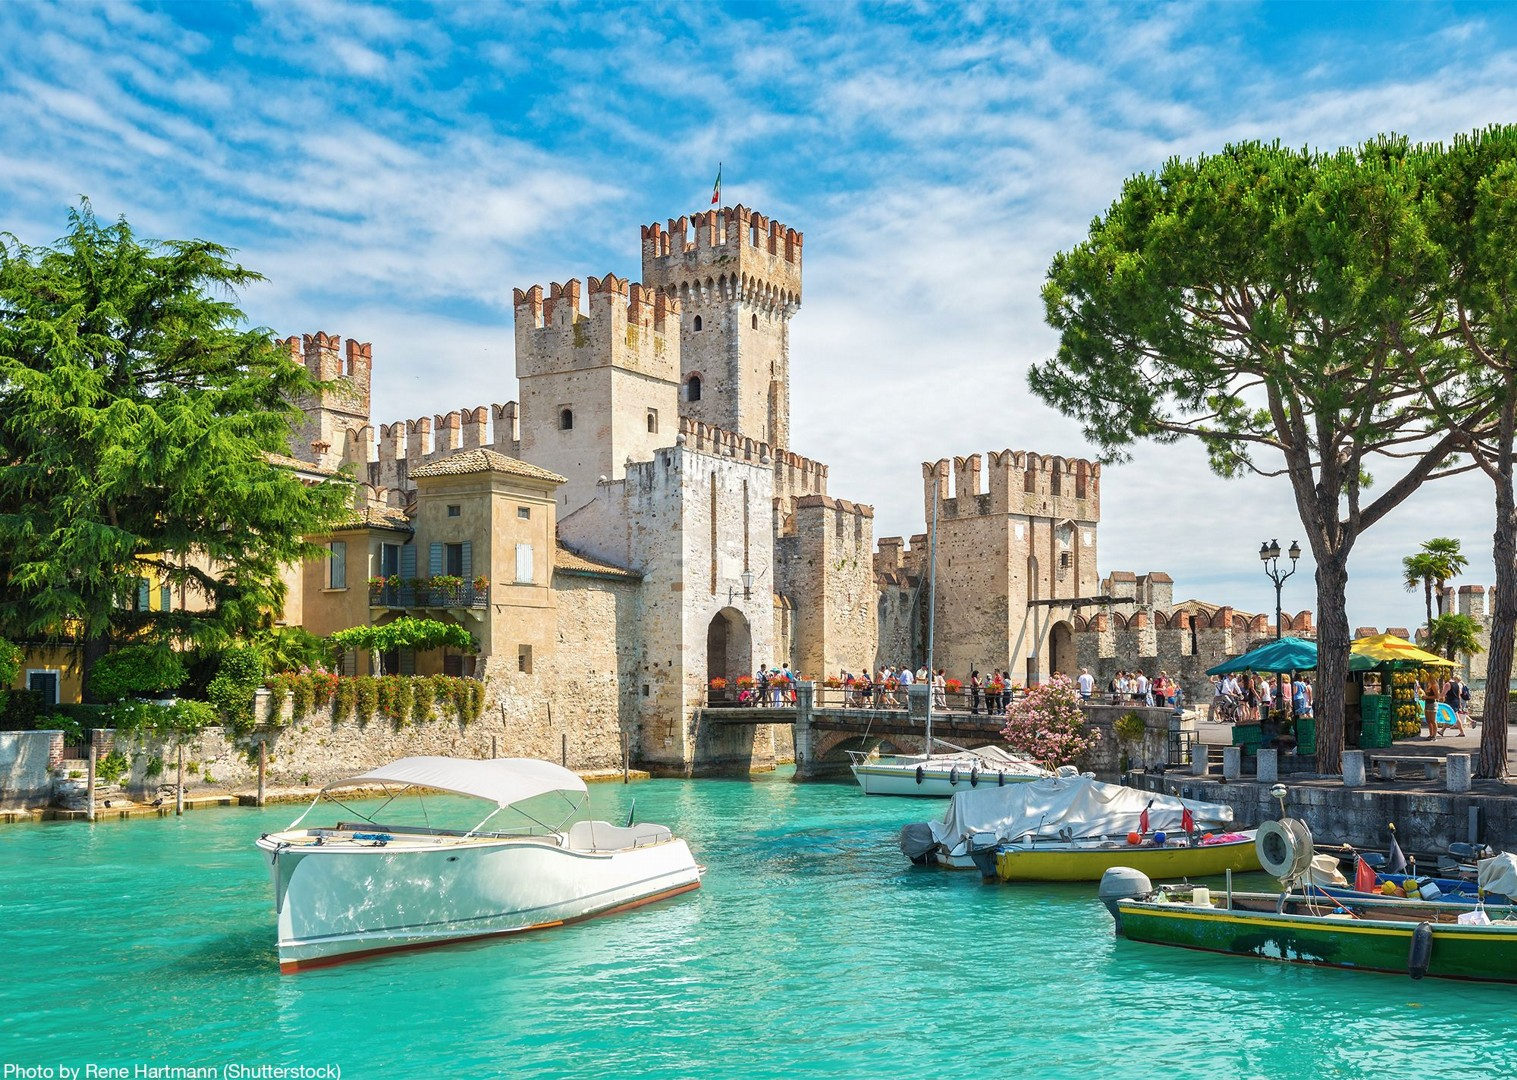 scaligero-castle-sirmione-italy-cycling-tour-self-guided-visit.jpg - Italy - Lake Garda to Venice - Self-Guided Leisure Cycling Holiday - Italia Leisure and Family Cycling